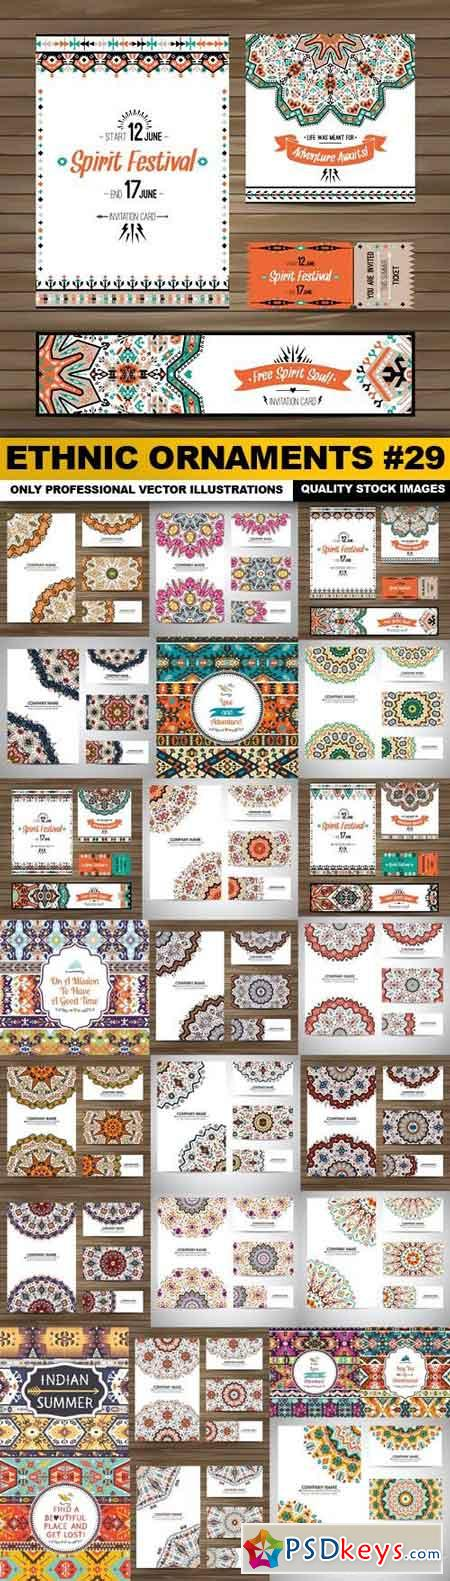 Ethnic Ornaments #29 - 25 Vector